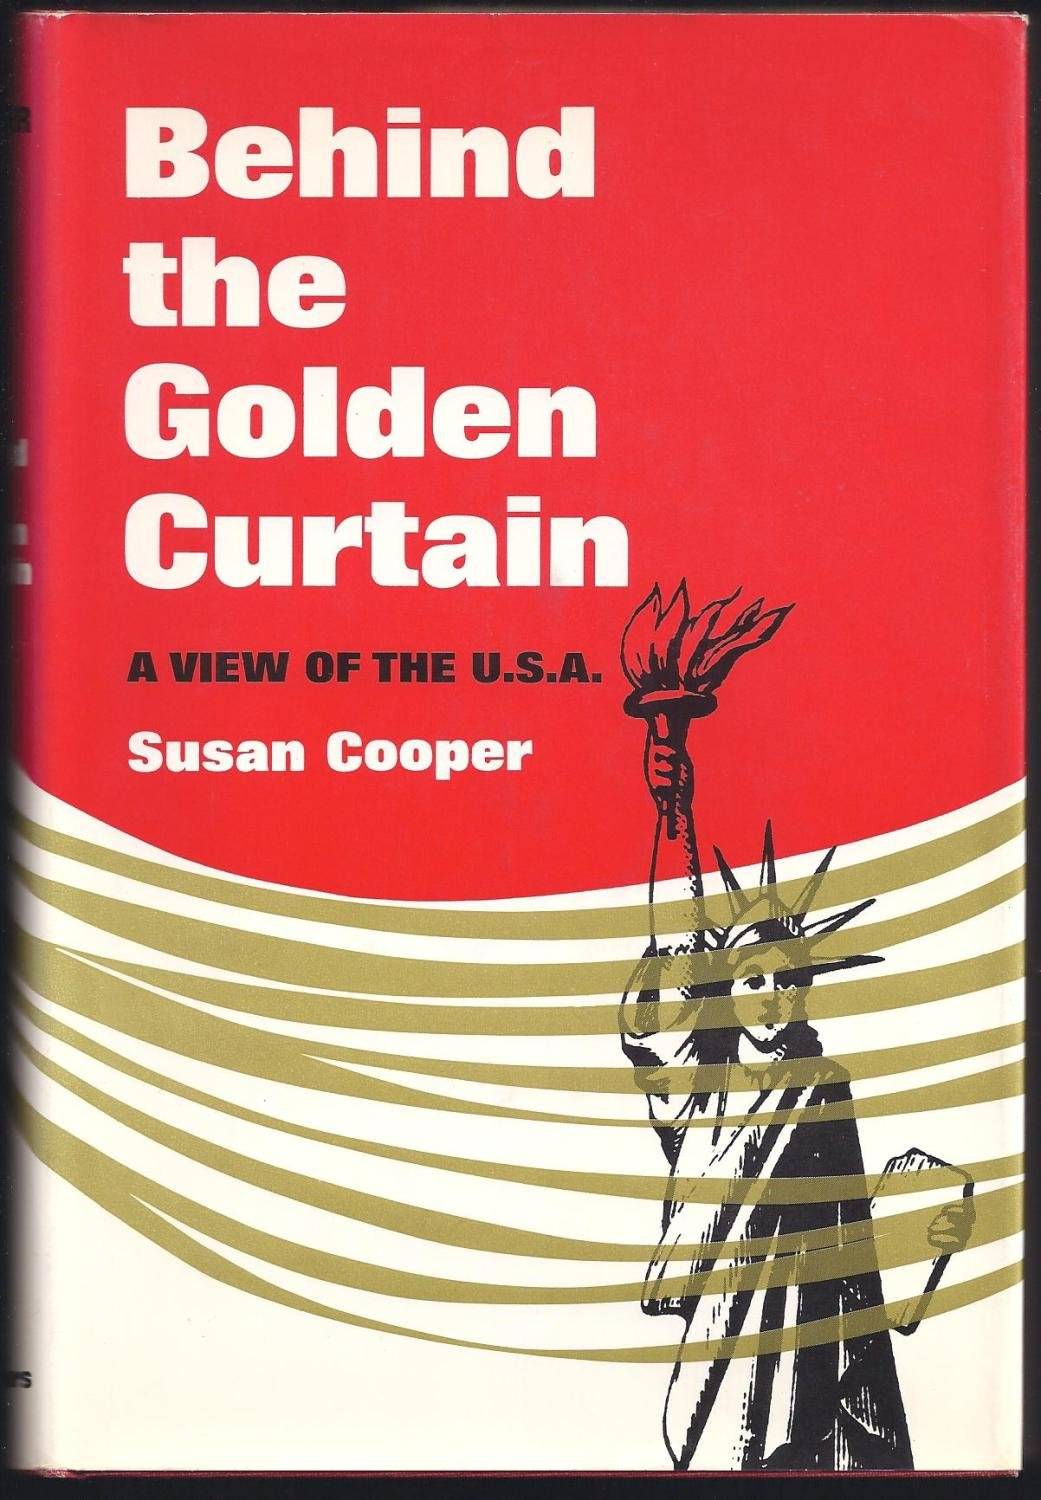 The cover of Behind the Golden Curtain showing the statue of liberty.